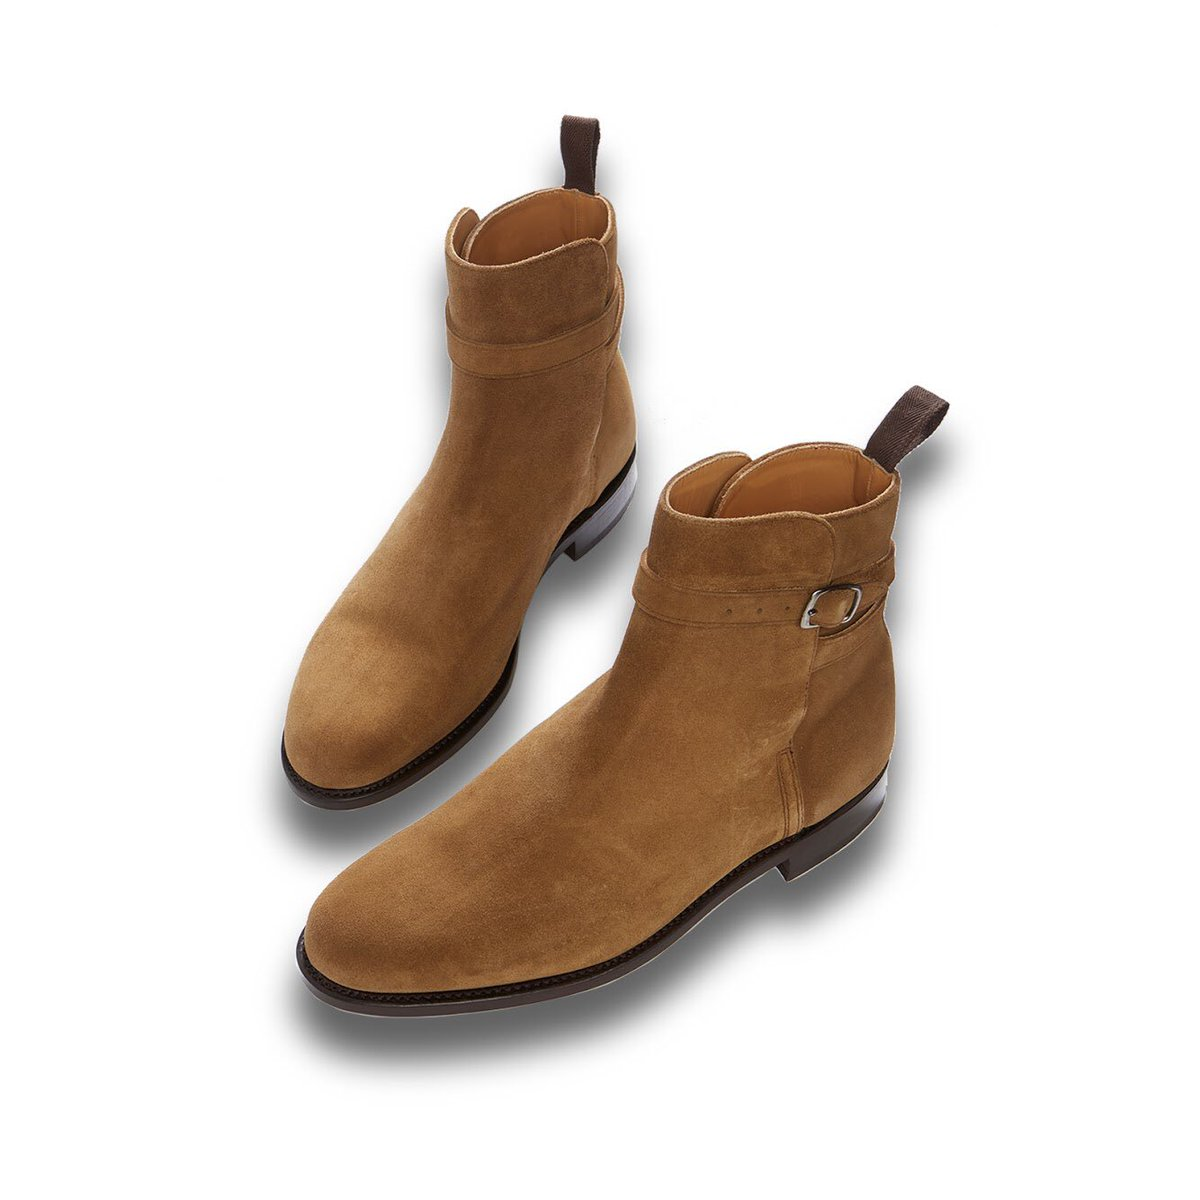 Looking for a piece to style your dress down friday? This Jodhpur boot from Hugs&co is right up your street. Shop here =>  https:// i-gasp.com/product/jodhpu r-boots-tobacco-suede/  …  #igaspofficial #hugsandco #solidbootchoice #dappermen #luxurysuede #menshoes #menstyle <br>http://pic.twitter.com/H368X5F535